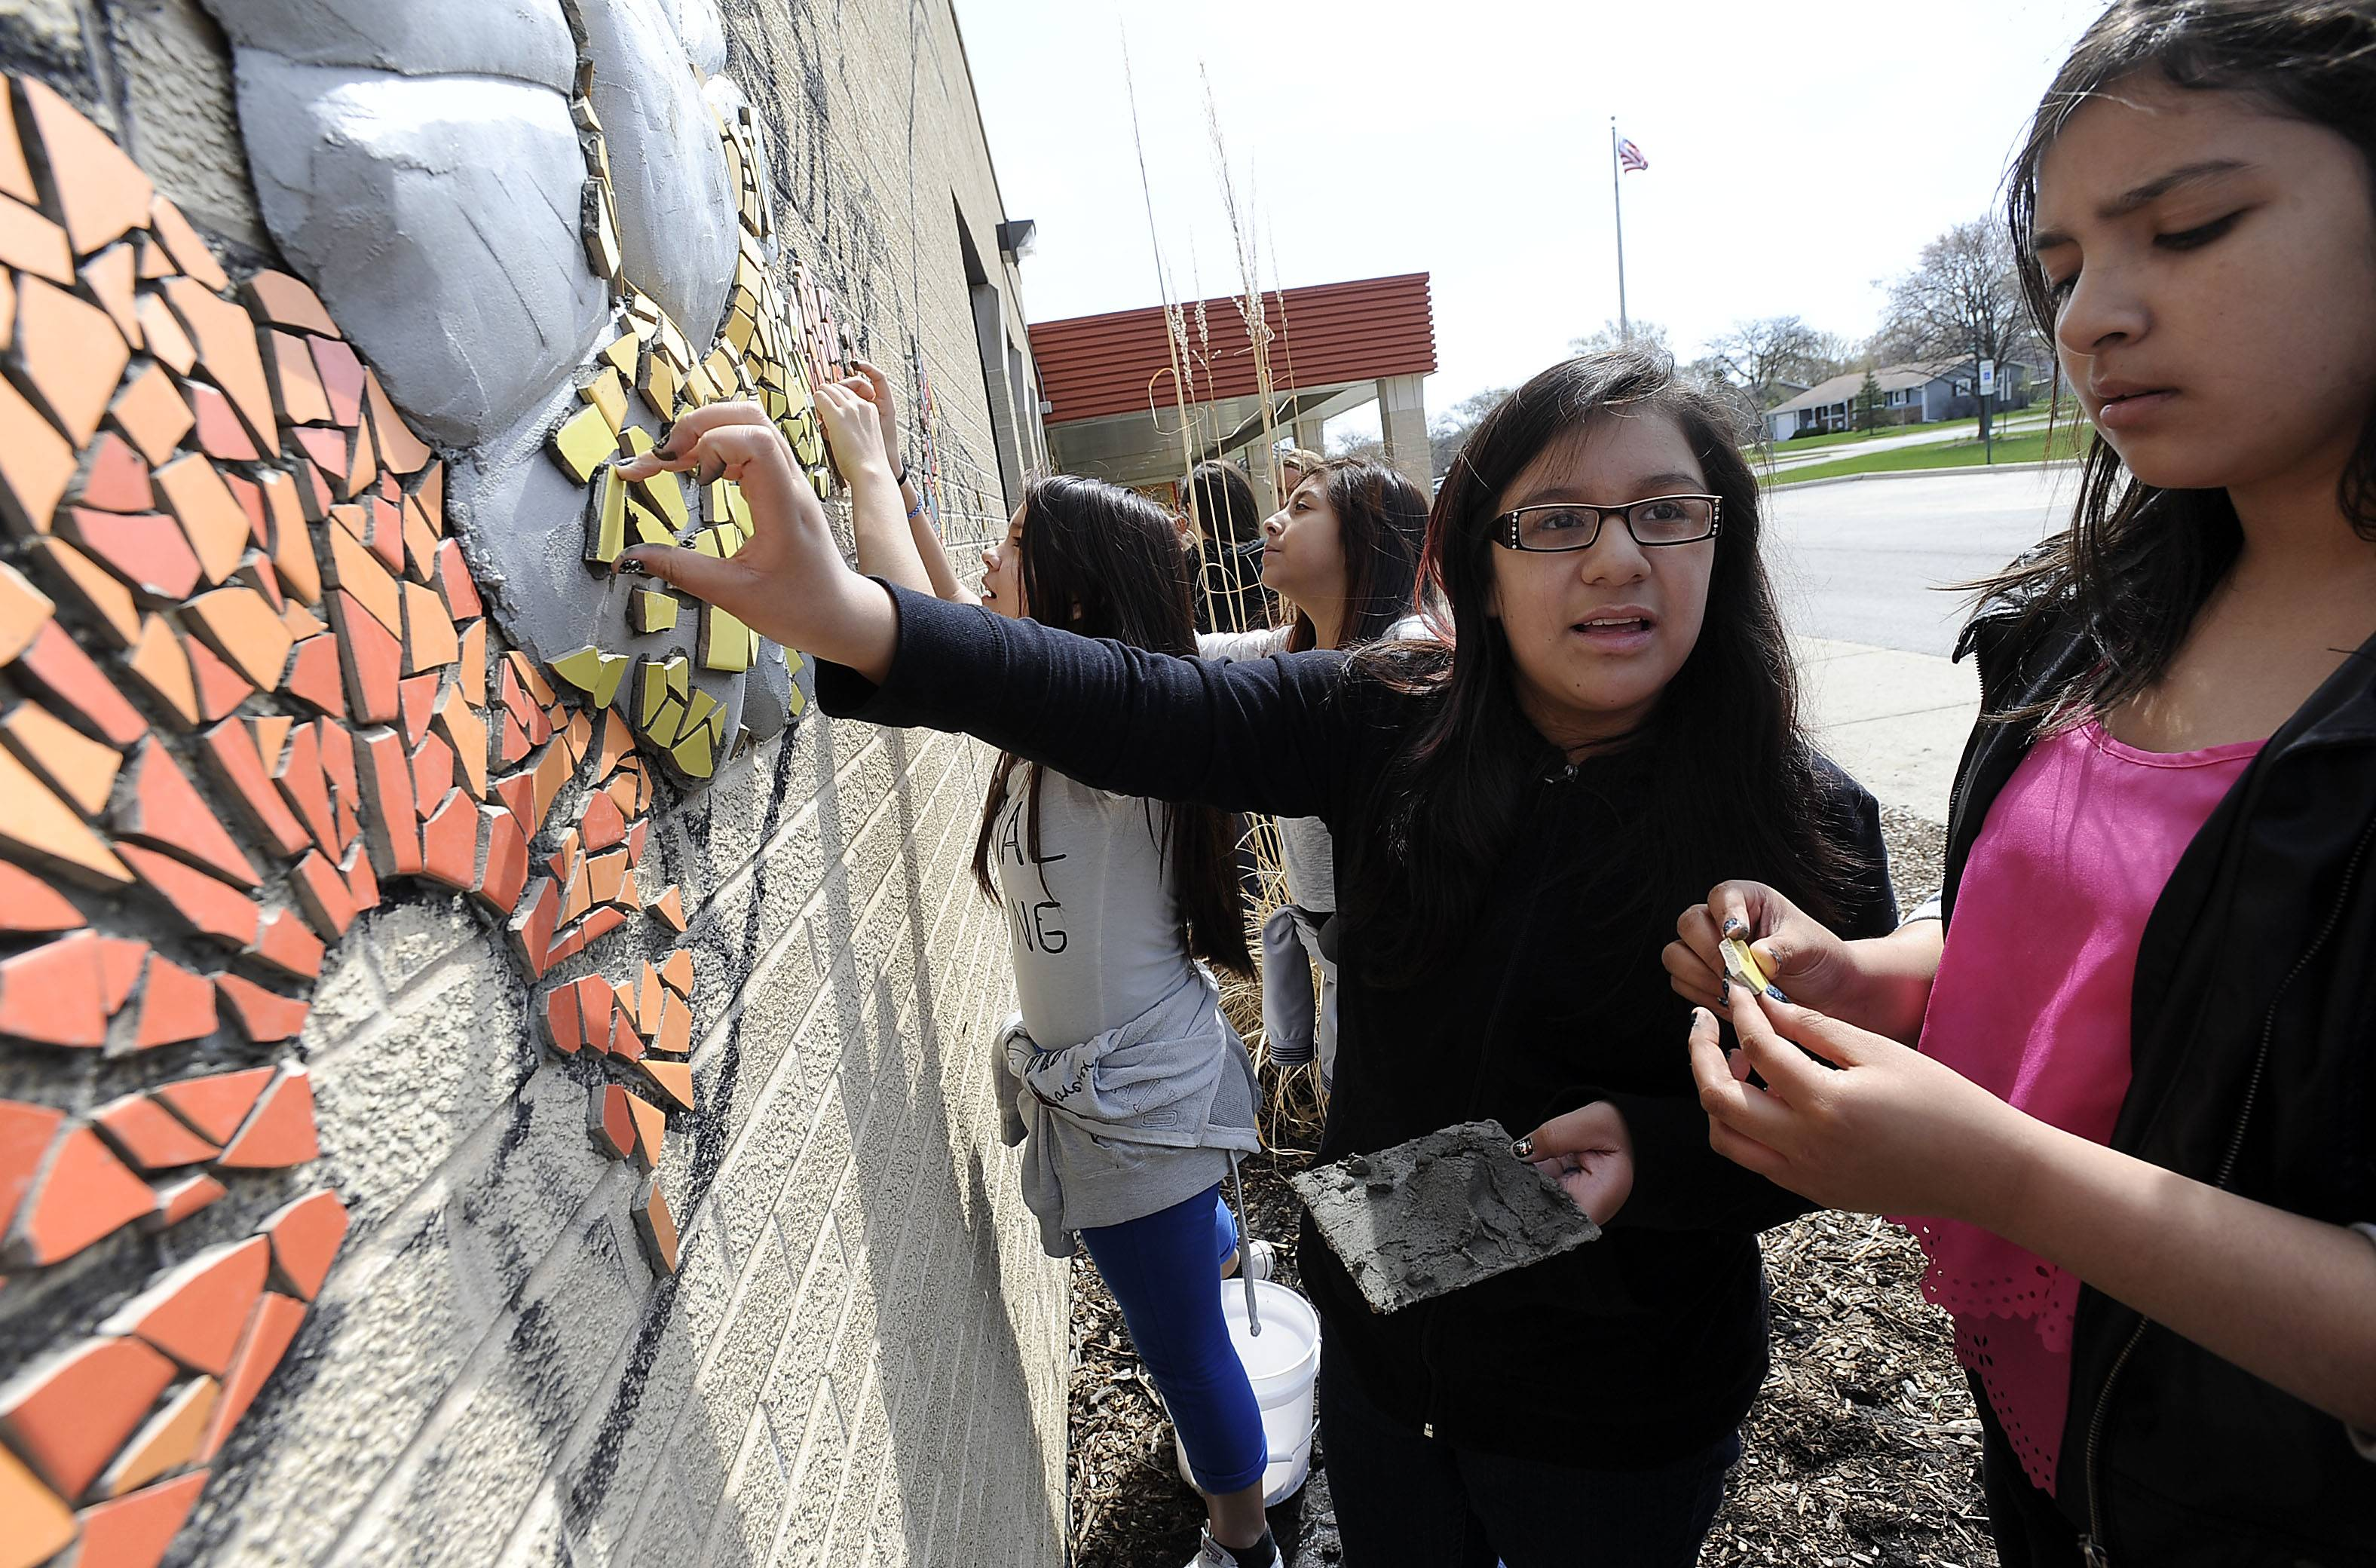 Gali Lopez and Litzy Gorostieta, both 12, lend a hand to the three-dimensional mural being created on the side of Jane Addams Elementary School in Palatine.